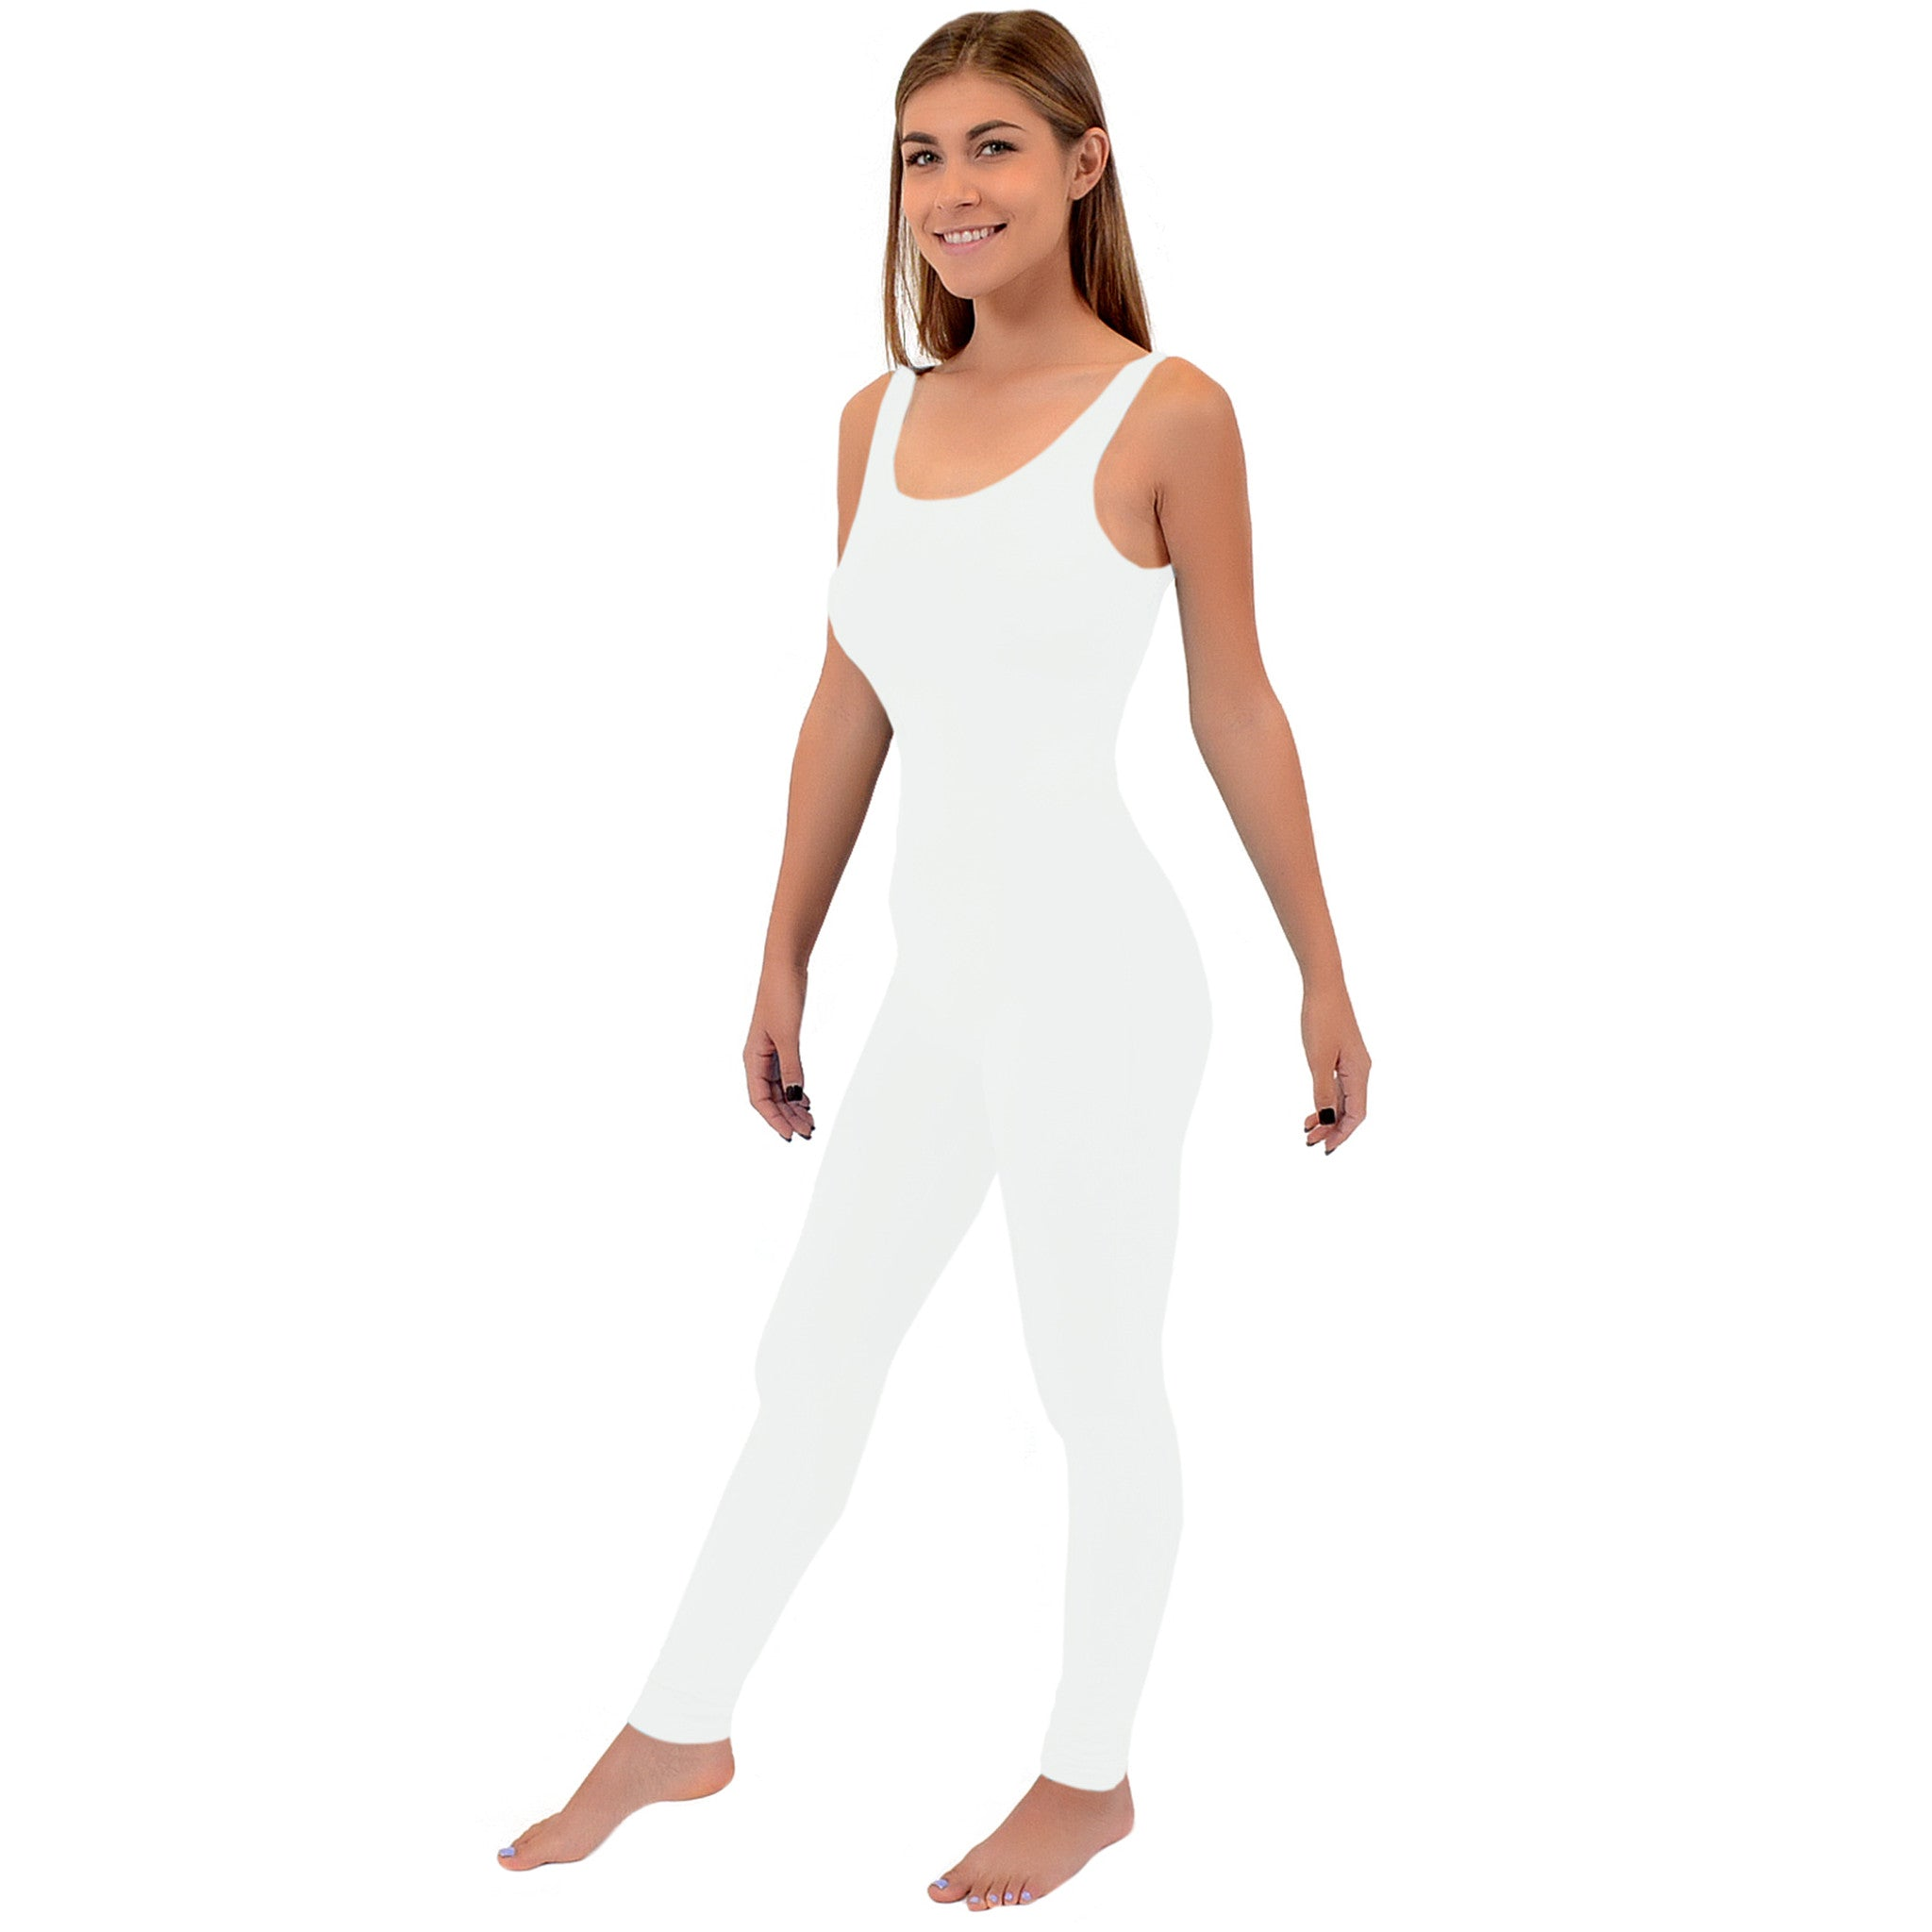 Women's Ankle Length Cotton Tank Unitard